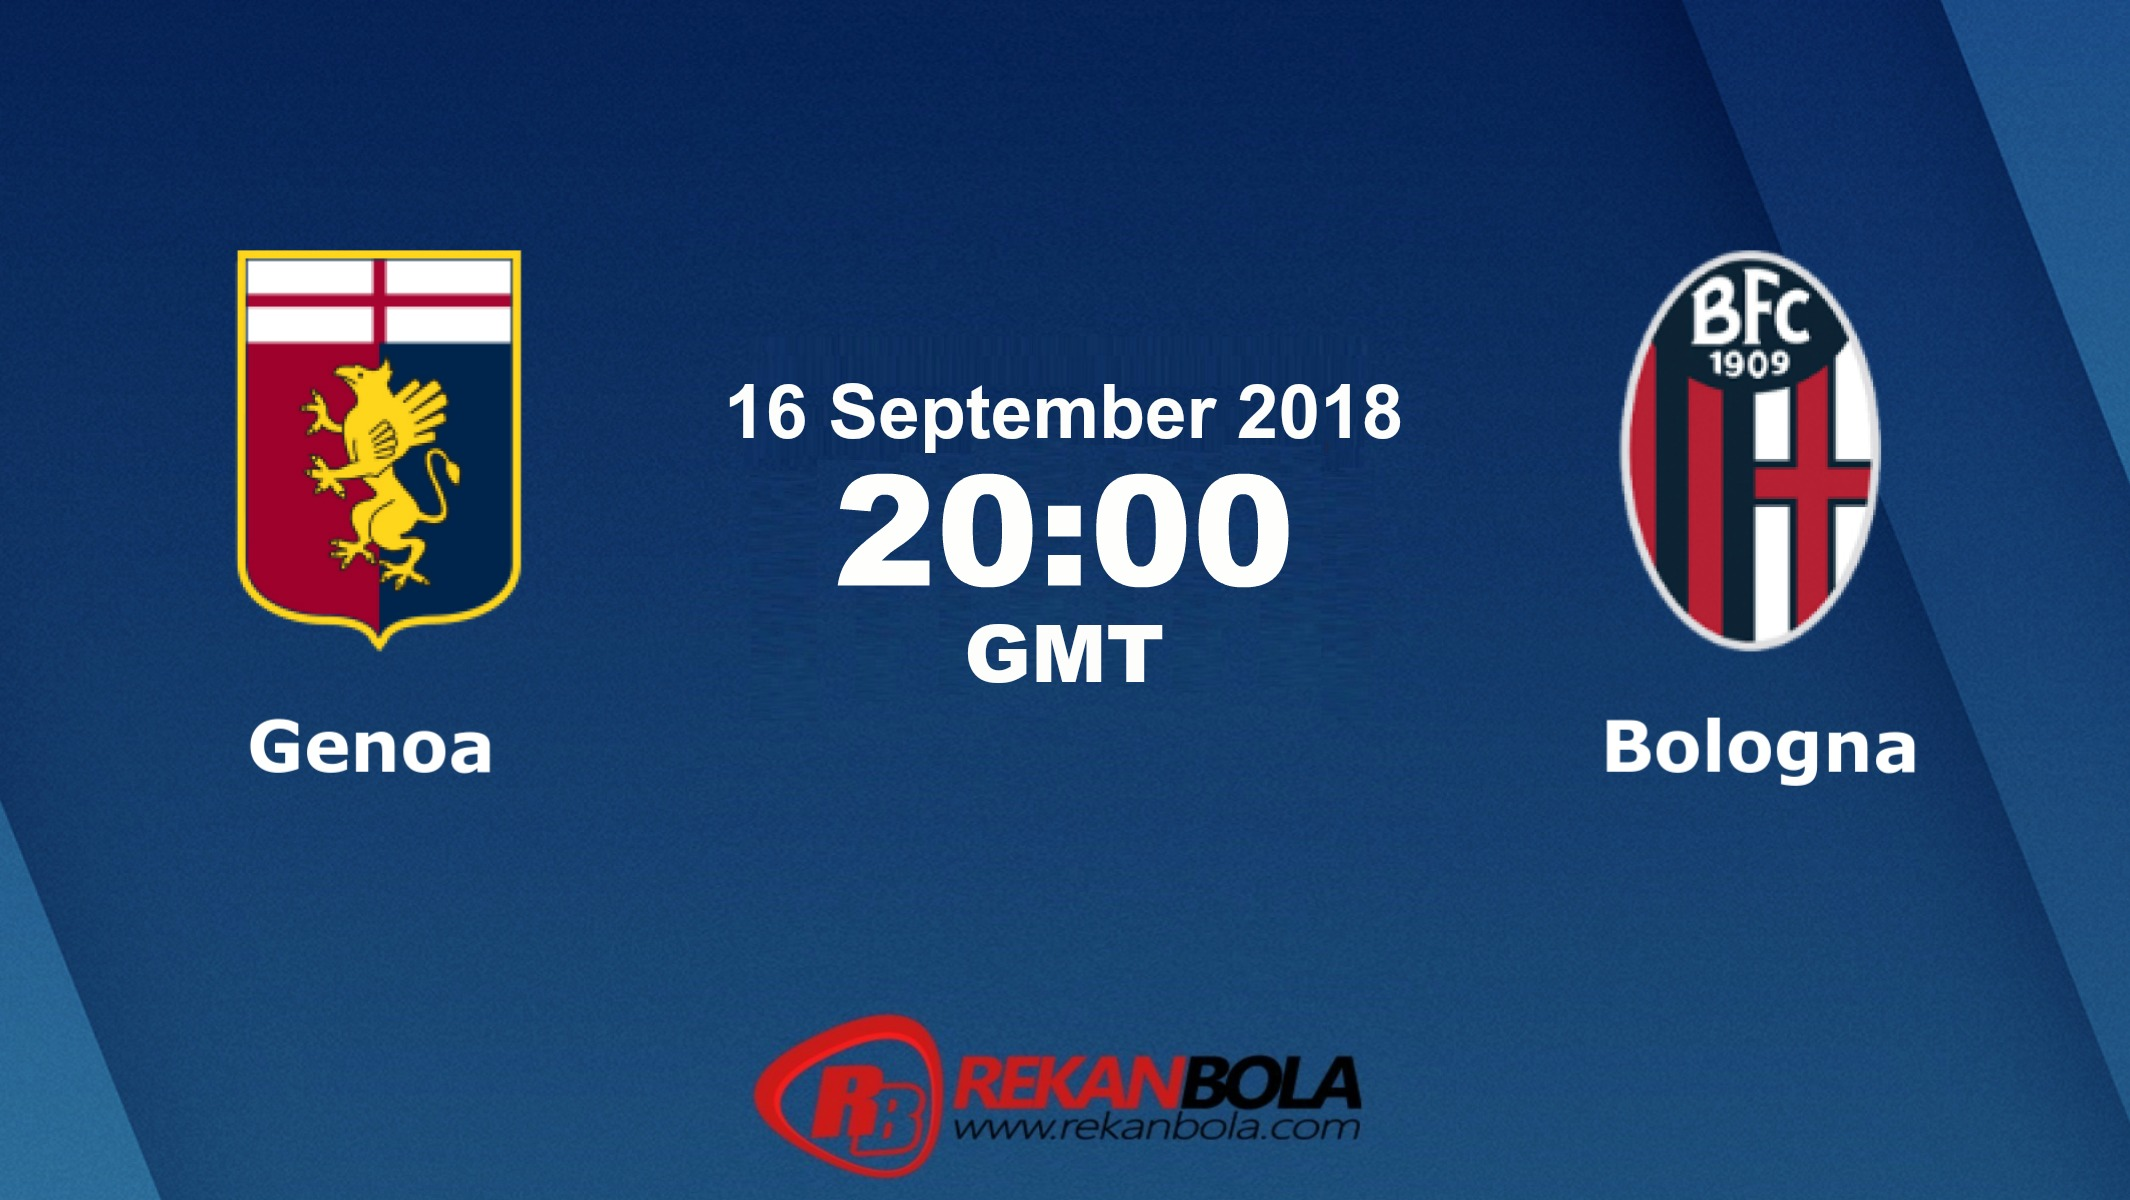 Nonton Siaran Live Streaming Genoa Vs Bologna 16 September 2018